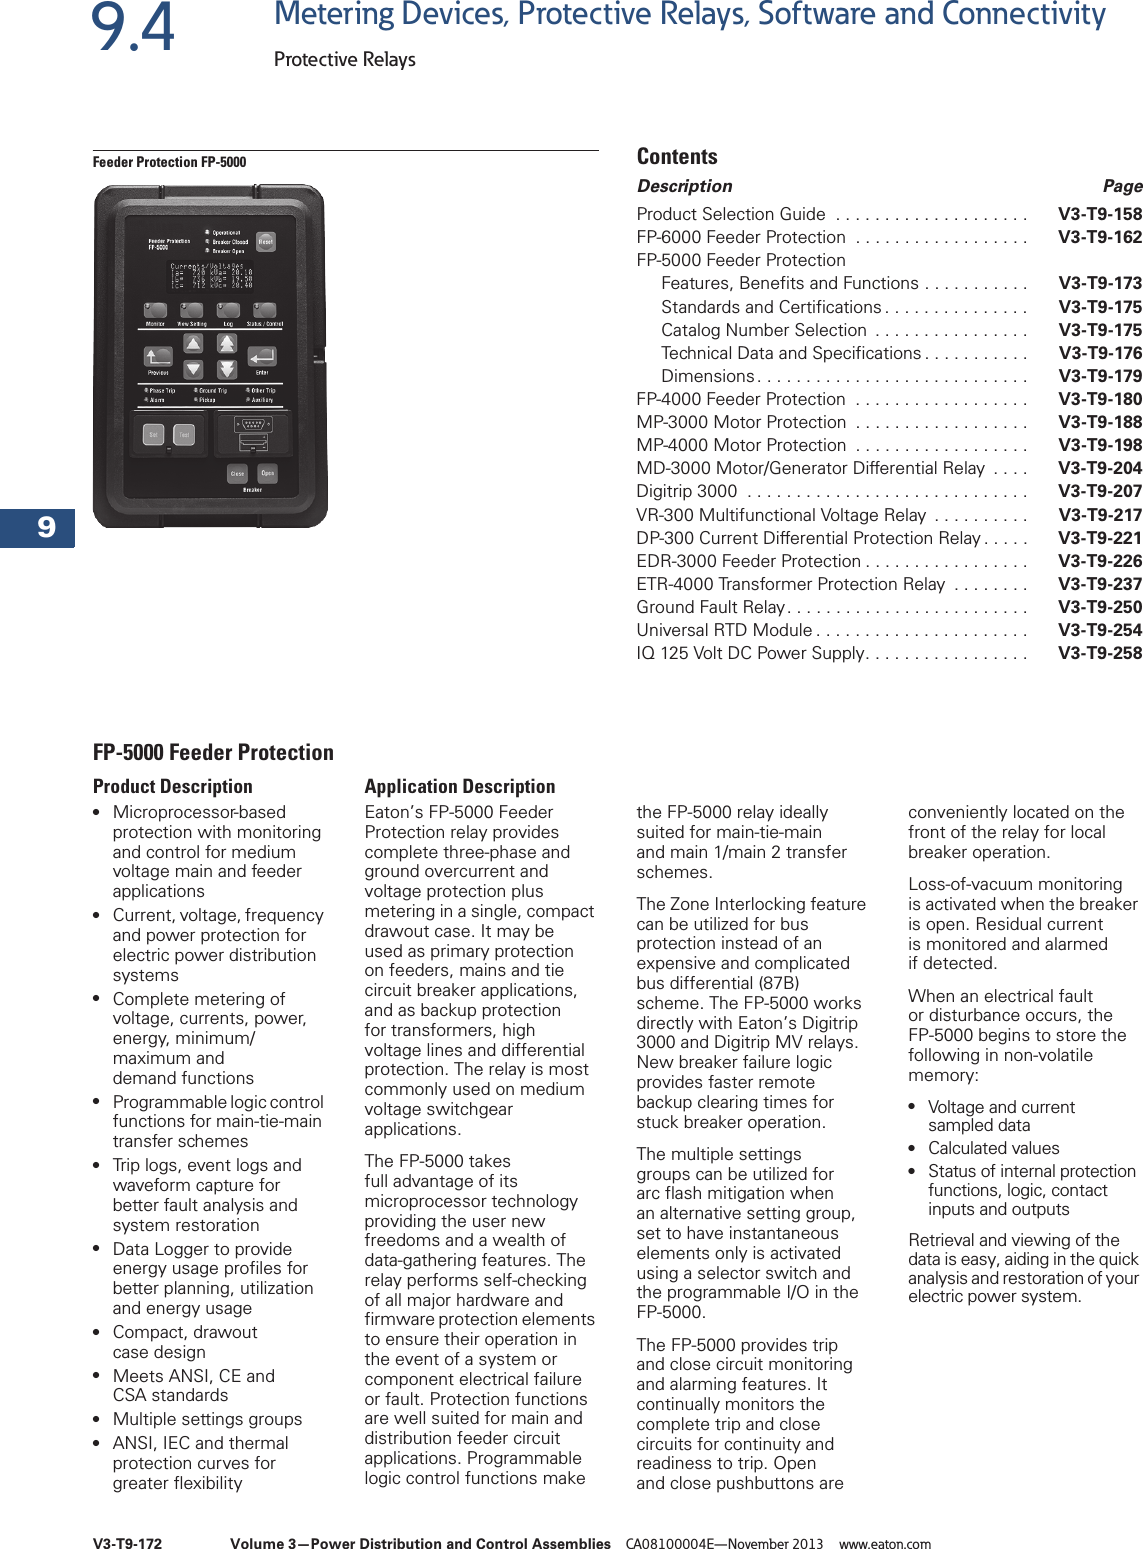 Volume 03—Power Distribution And Control Assemblies 150190